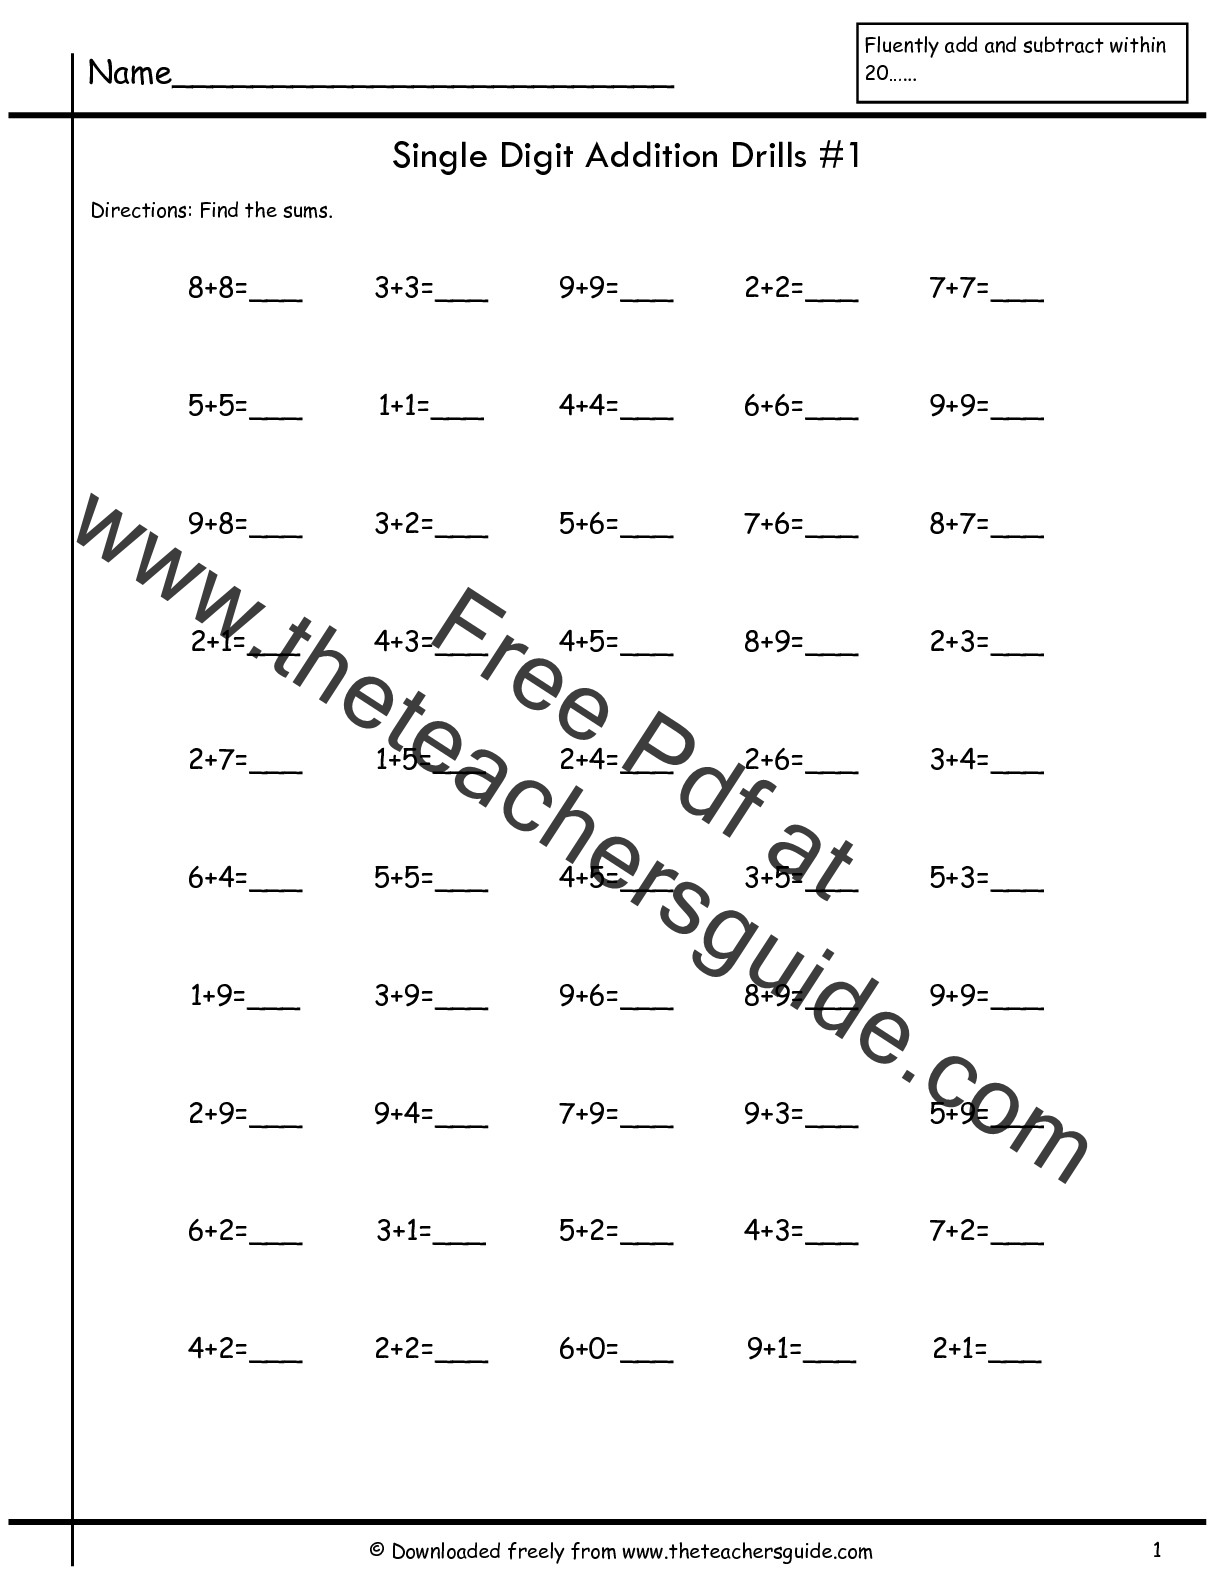 Single Digit Addition Fluency Drills from The Teachers Guide – Addition Drill Worksheets